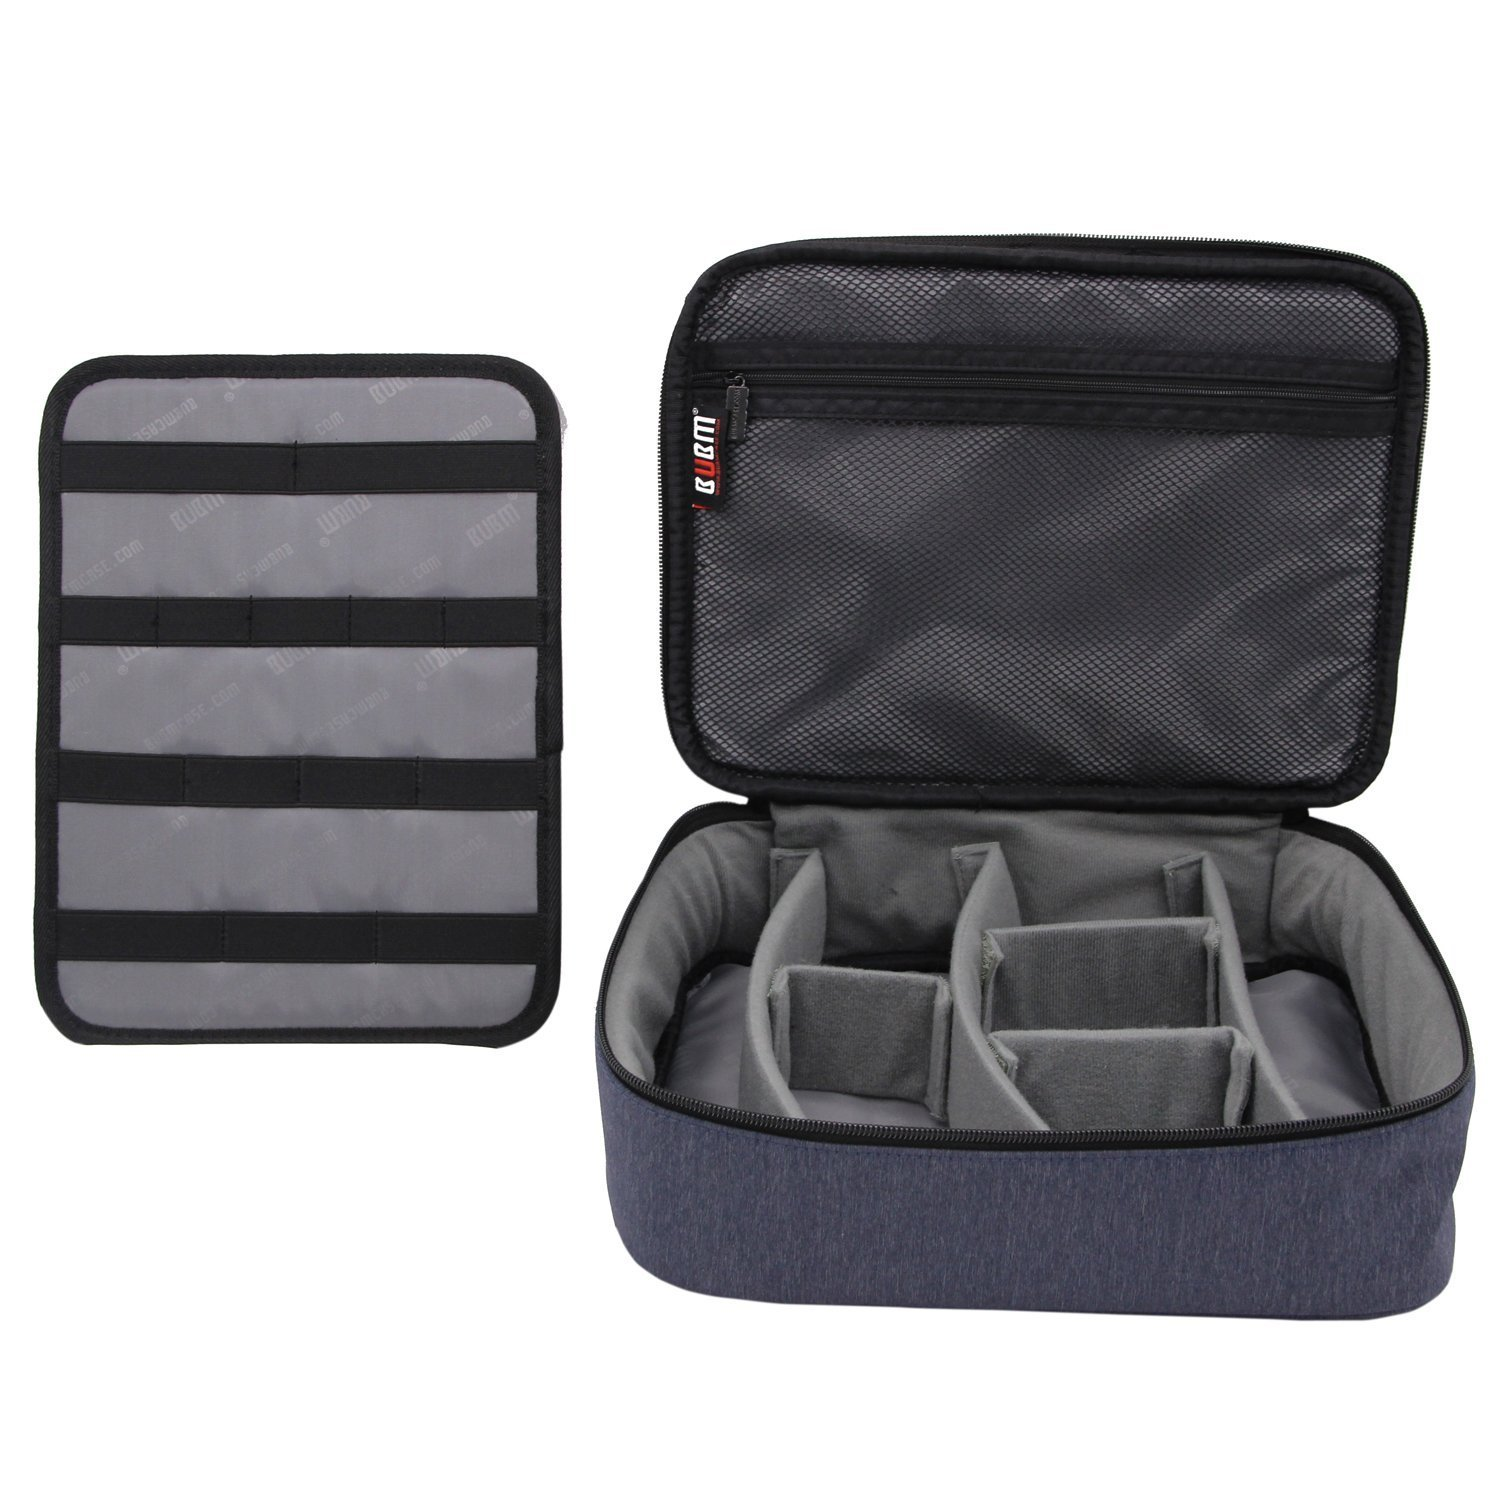 BUBM Large Electronic Accessories Carrying Organizer with Cable Tie-Dark Blue